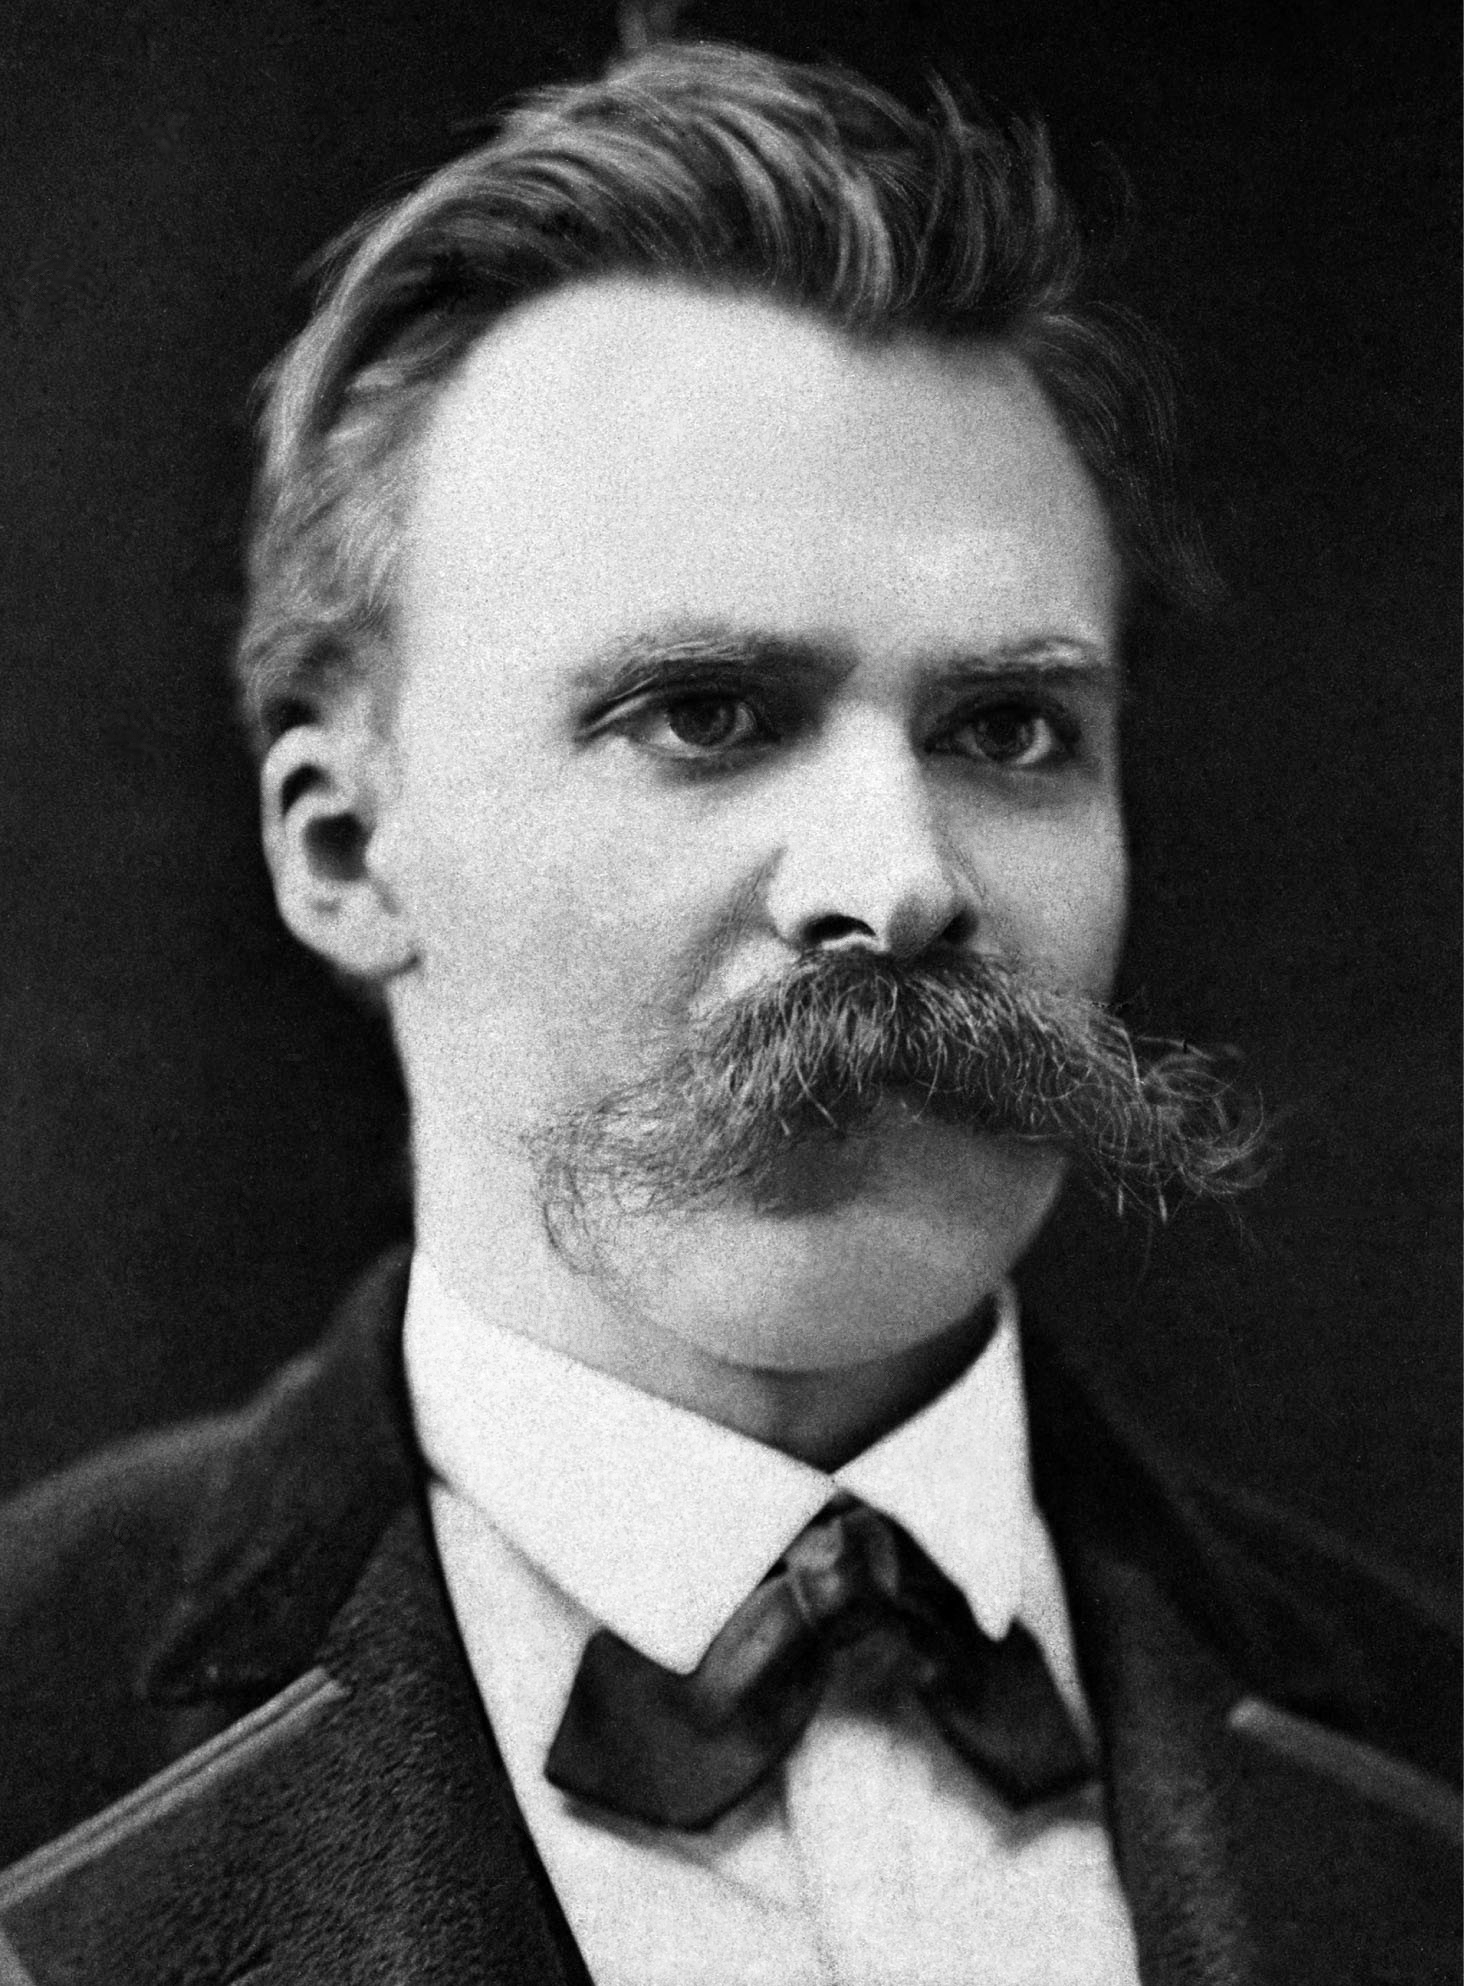 http://upload.wikimedia.org/wikipedia/commons/1/1b/Nietzsche187a.jpg